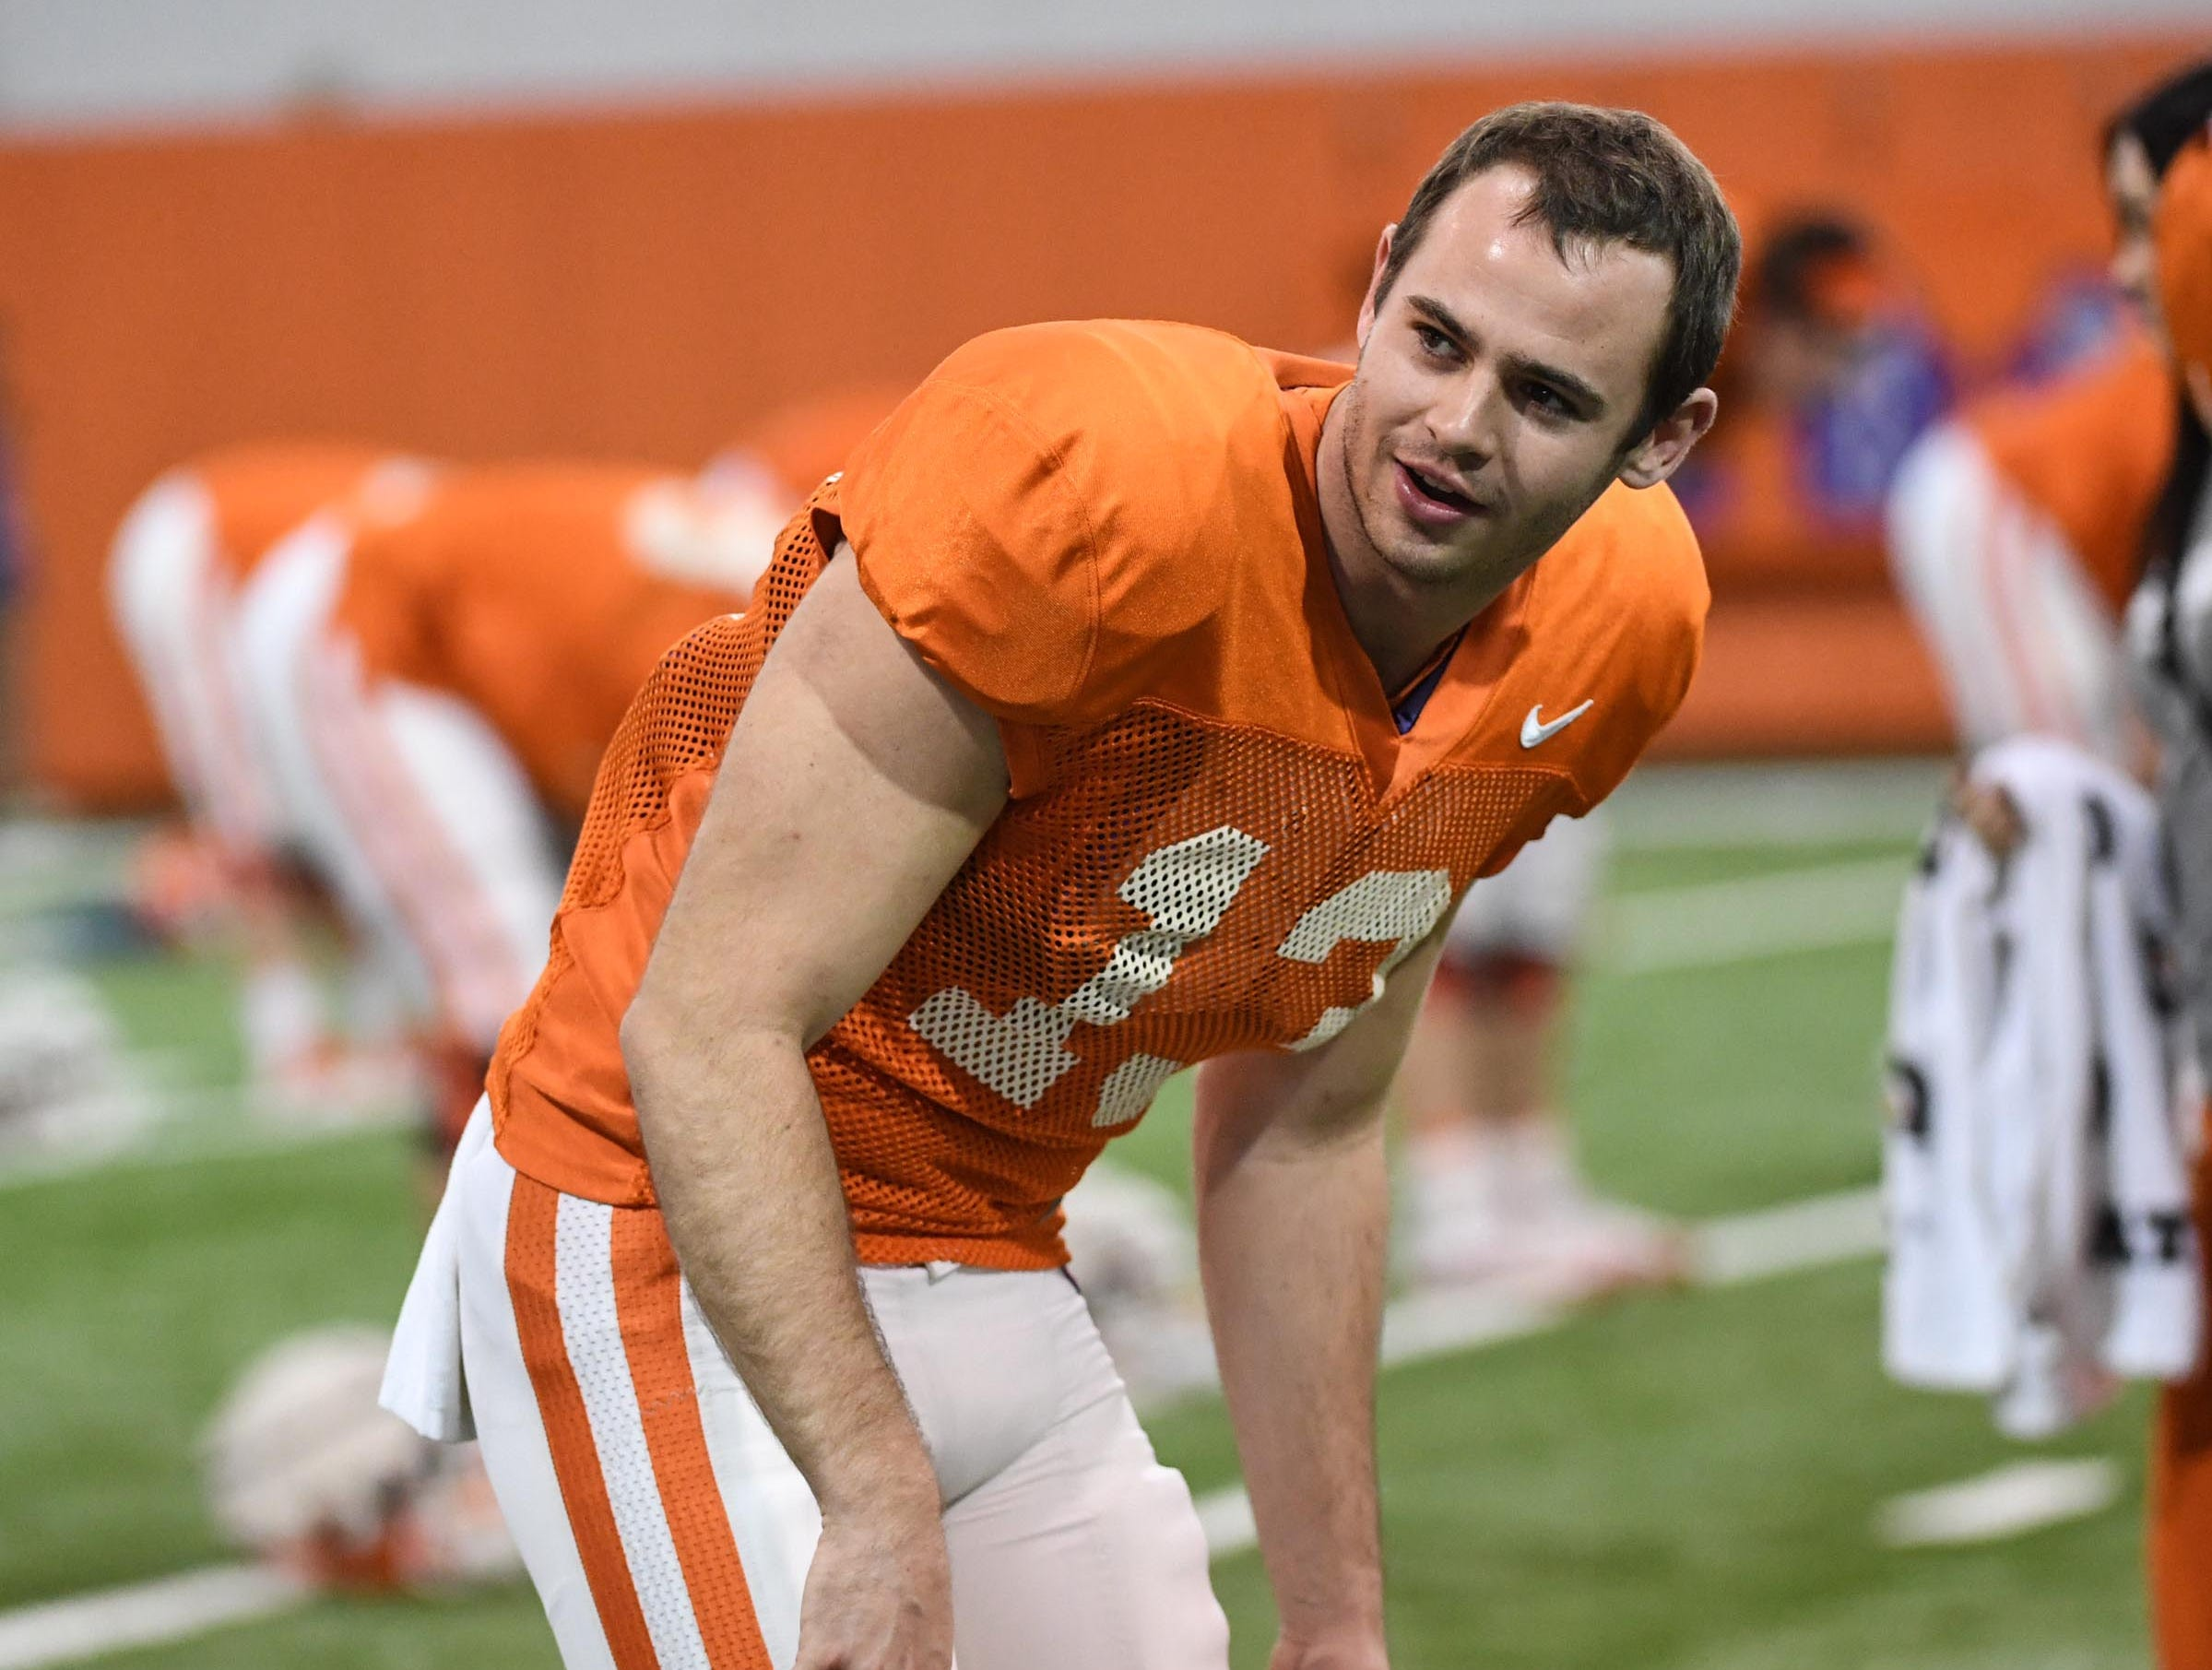 Clemson wide receiver Hunter Renfrow (13) stretches during practice for the Cotton Bowl at the Poe Indoor Facility in Clemson Friday, December 14, 2018.